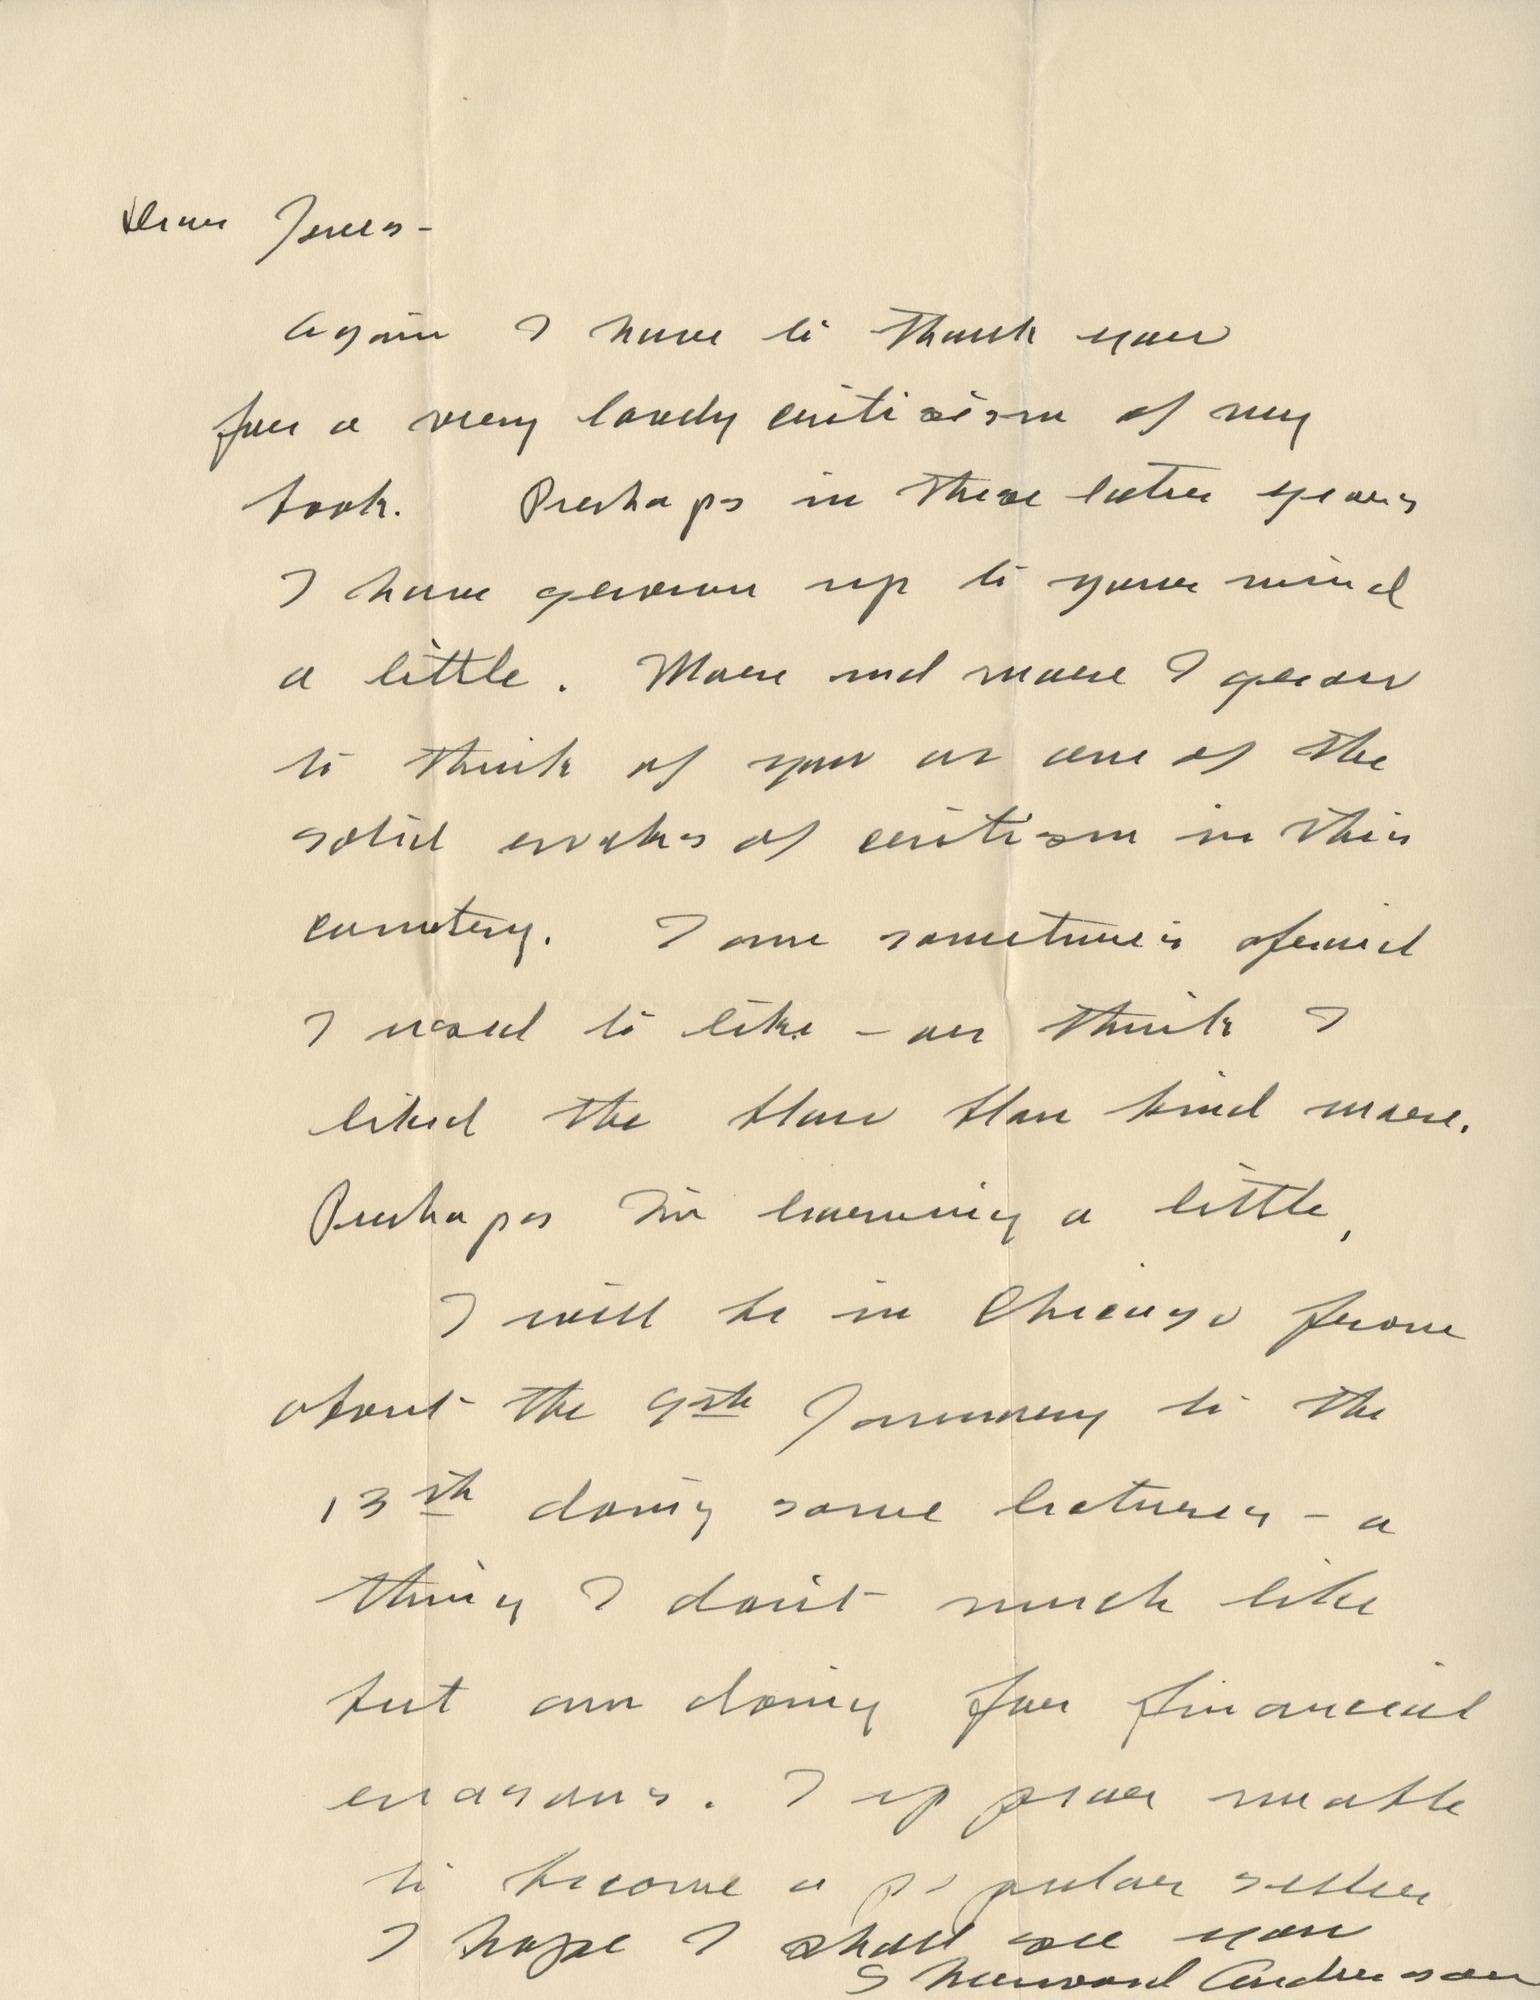 Ms2015-044_AndersonSherwood_Letter_1924_1214.jpg